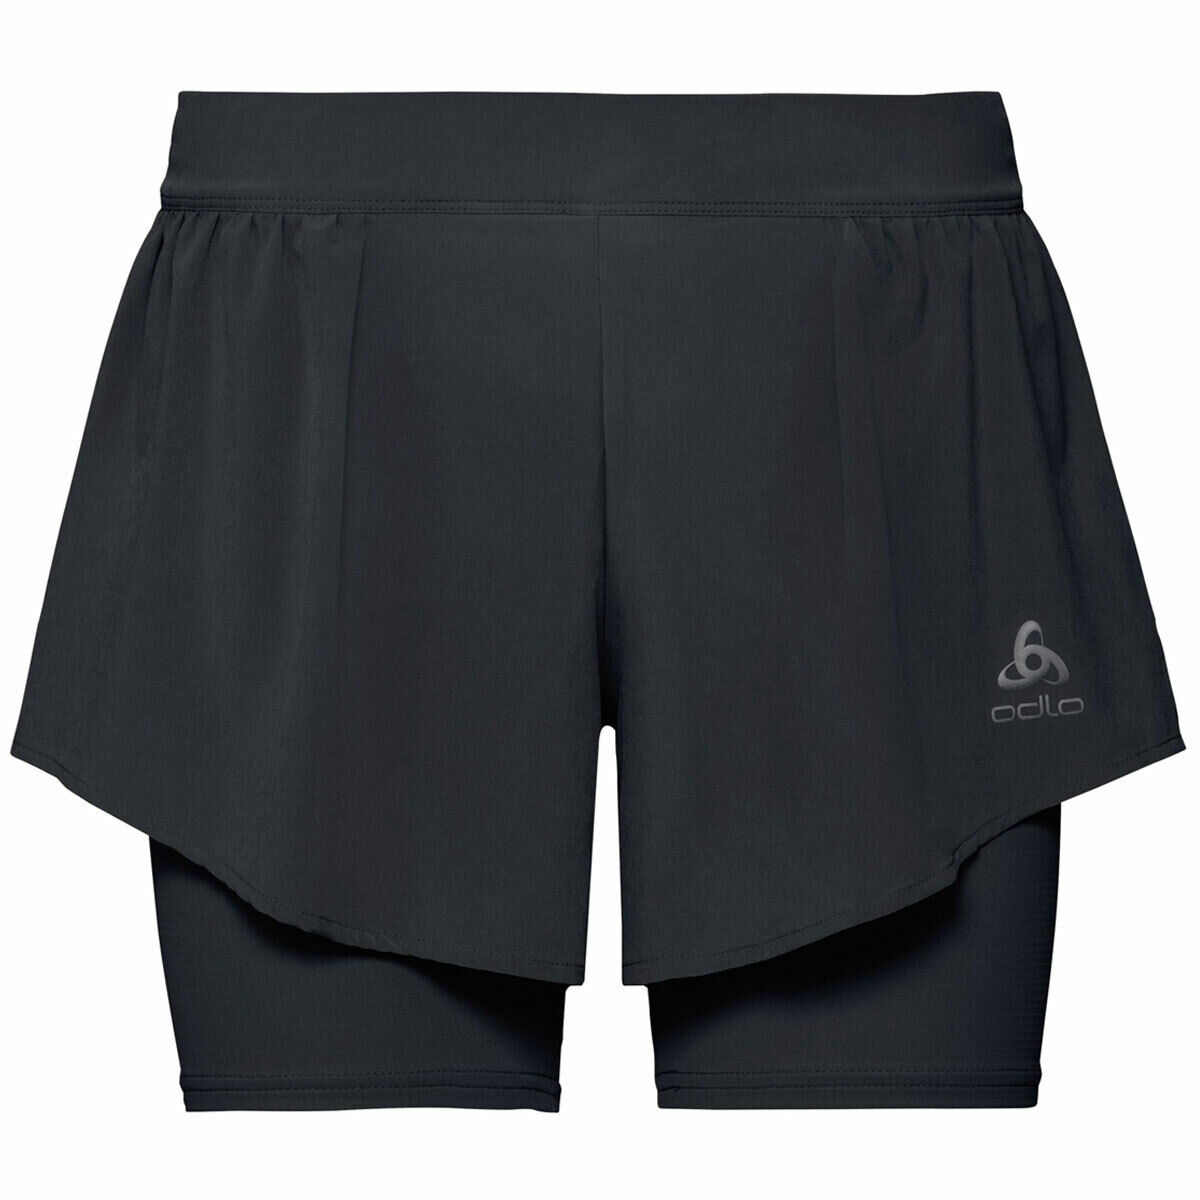 Odlo ZEROWEIGHT CERAMICOOL PRO 2-IN-1 SHORTS Lady   322091-15000 Hose + Tight